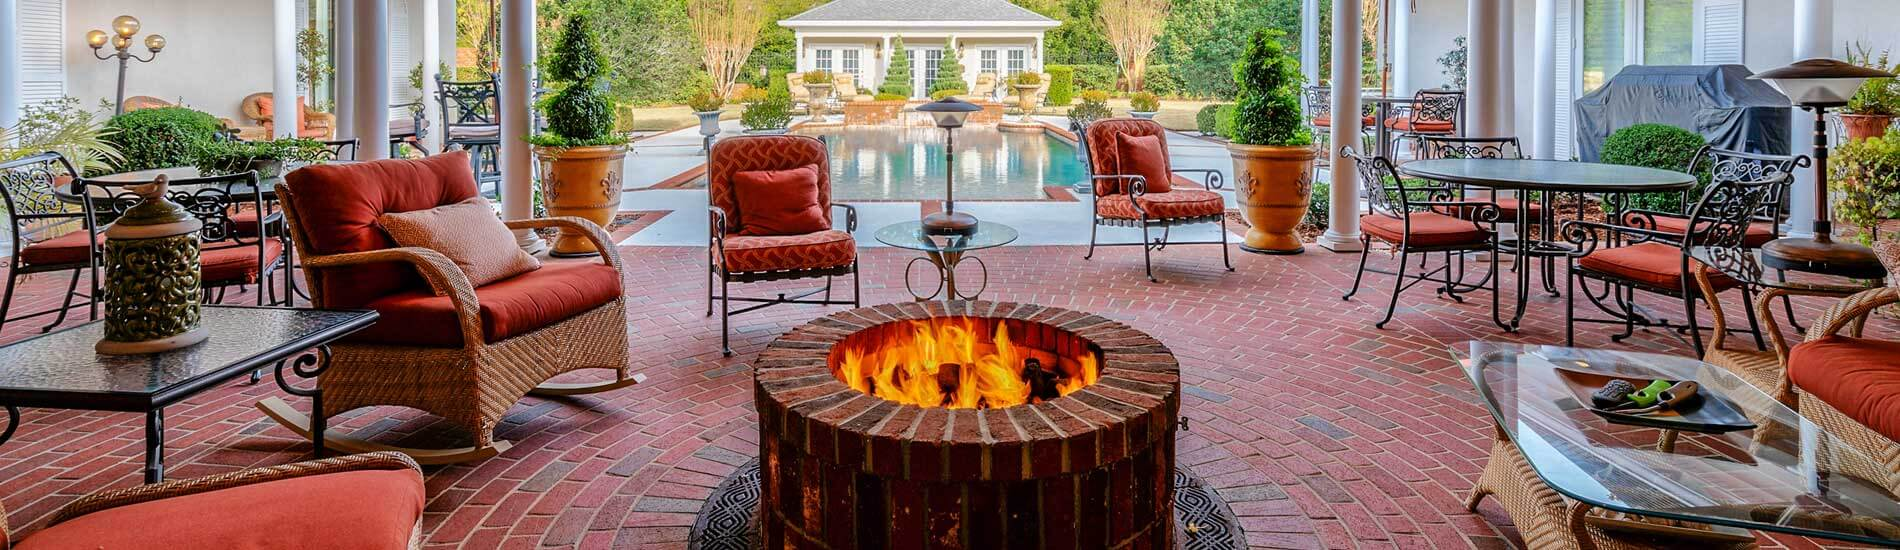 Fire pit under porch by pool | Greg Oldham Realtor Home Buying Selling Columbia County GA